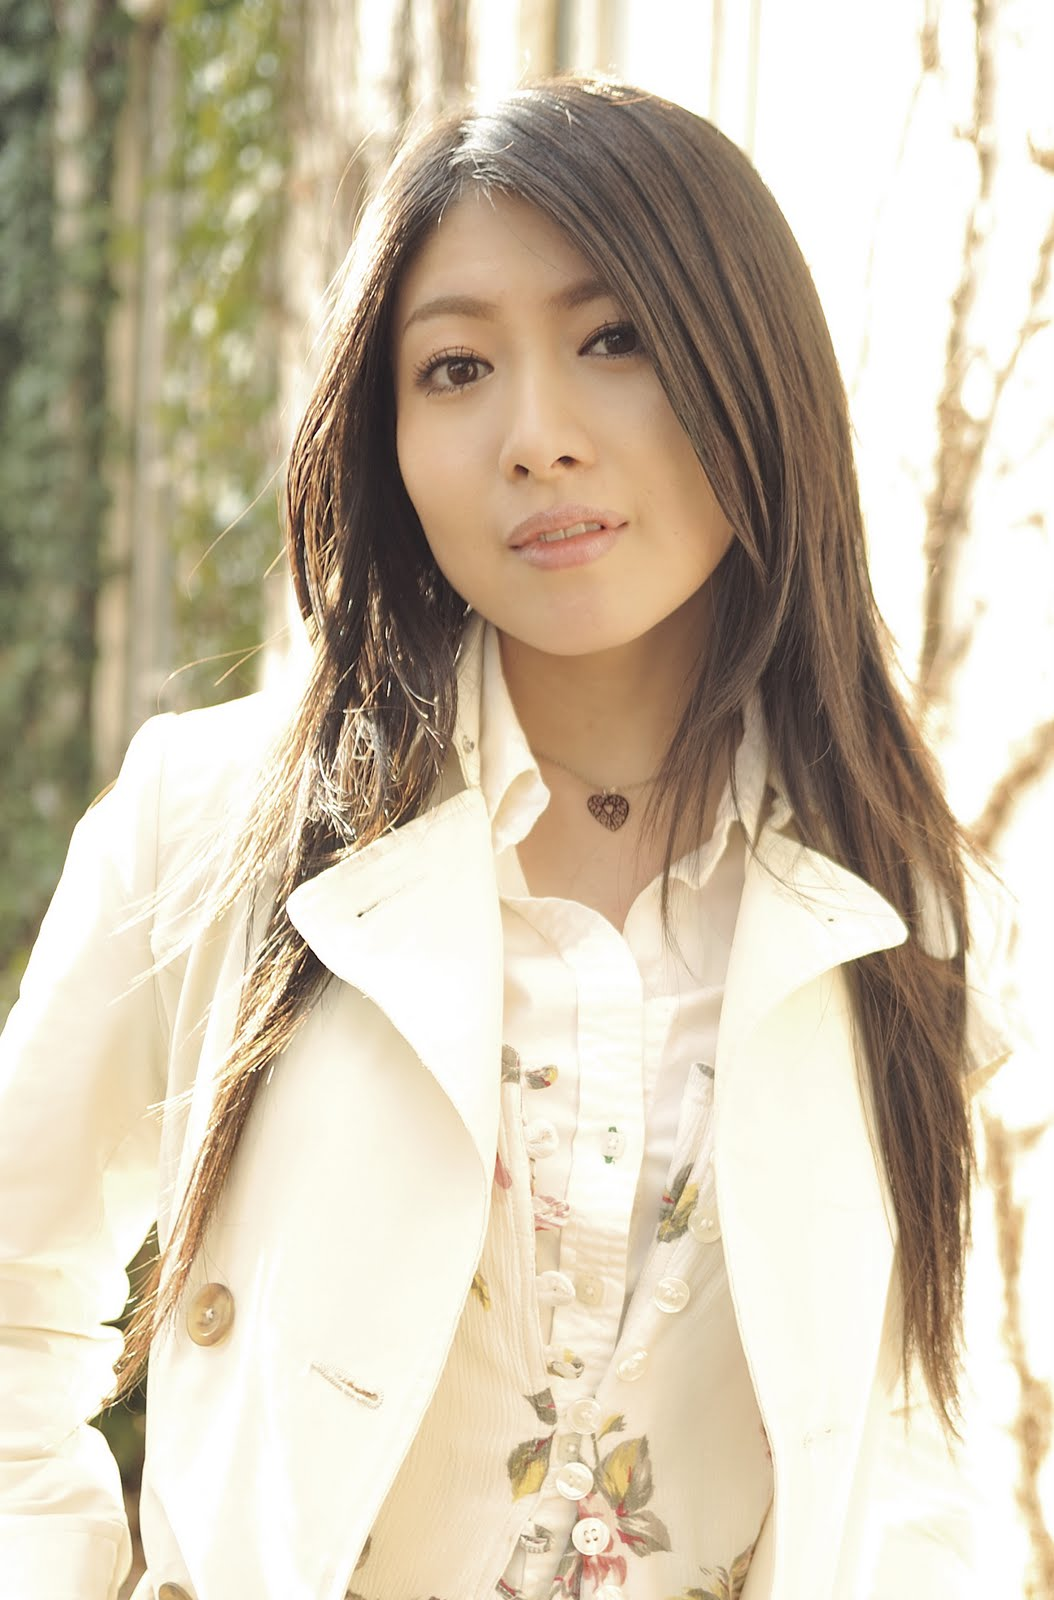 Popular voice actress, Minori Chihara.